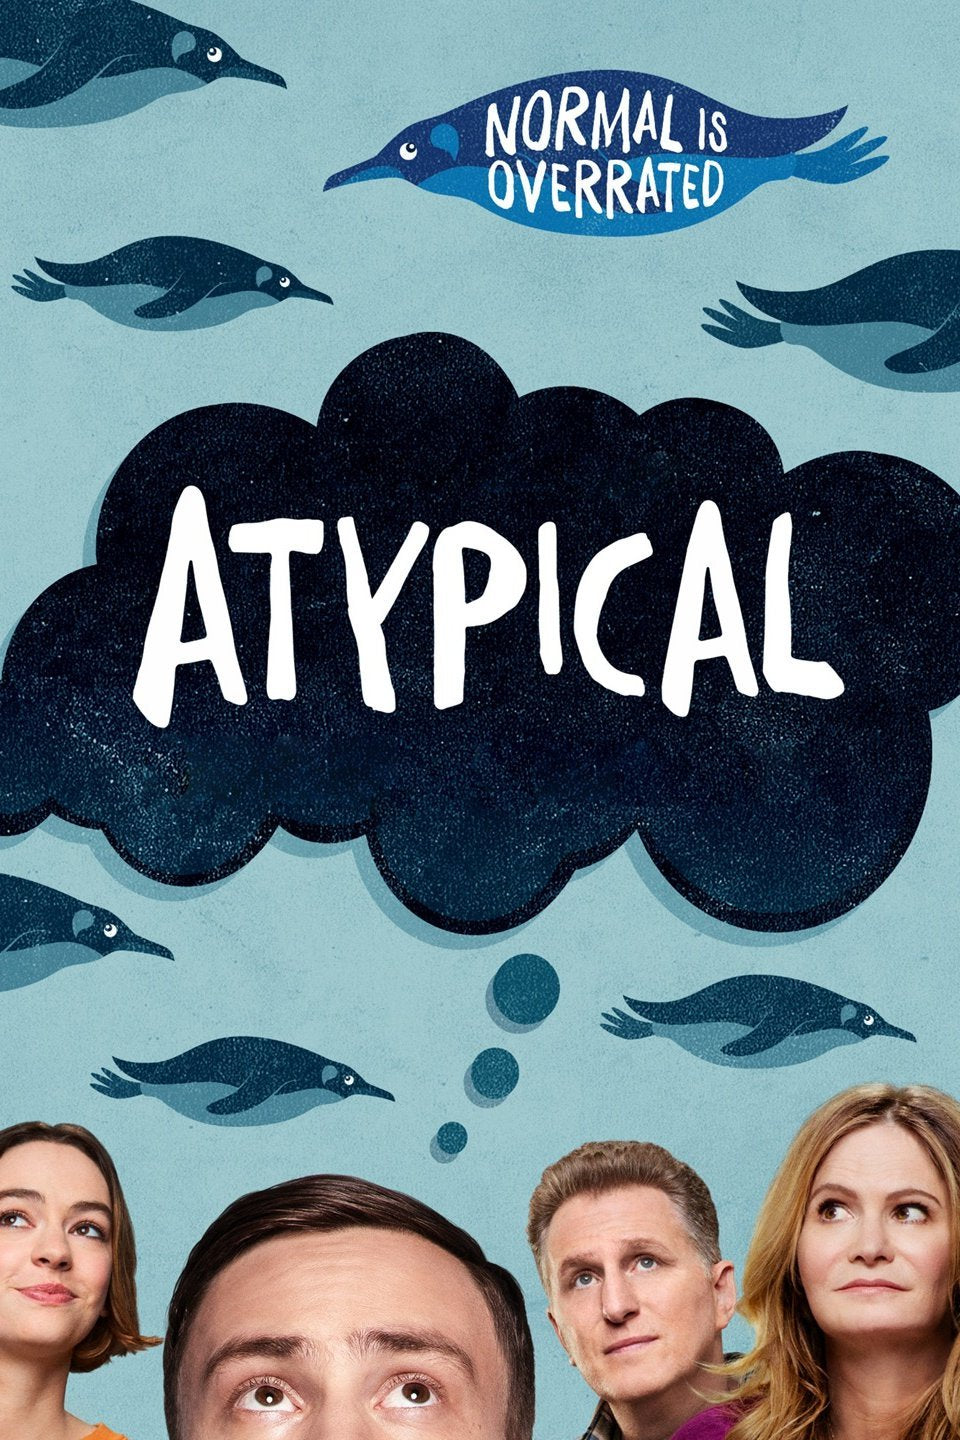 Atypical, An underrated TV show that deserves Recognition.  #CraxyReviews